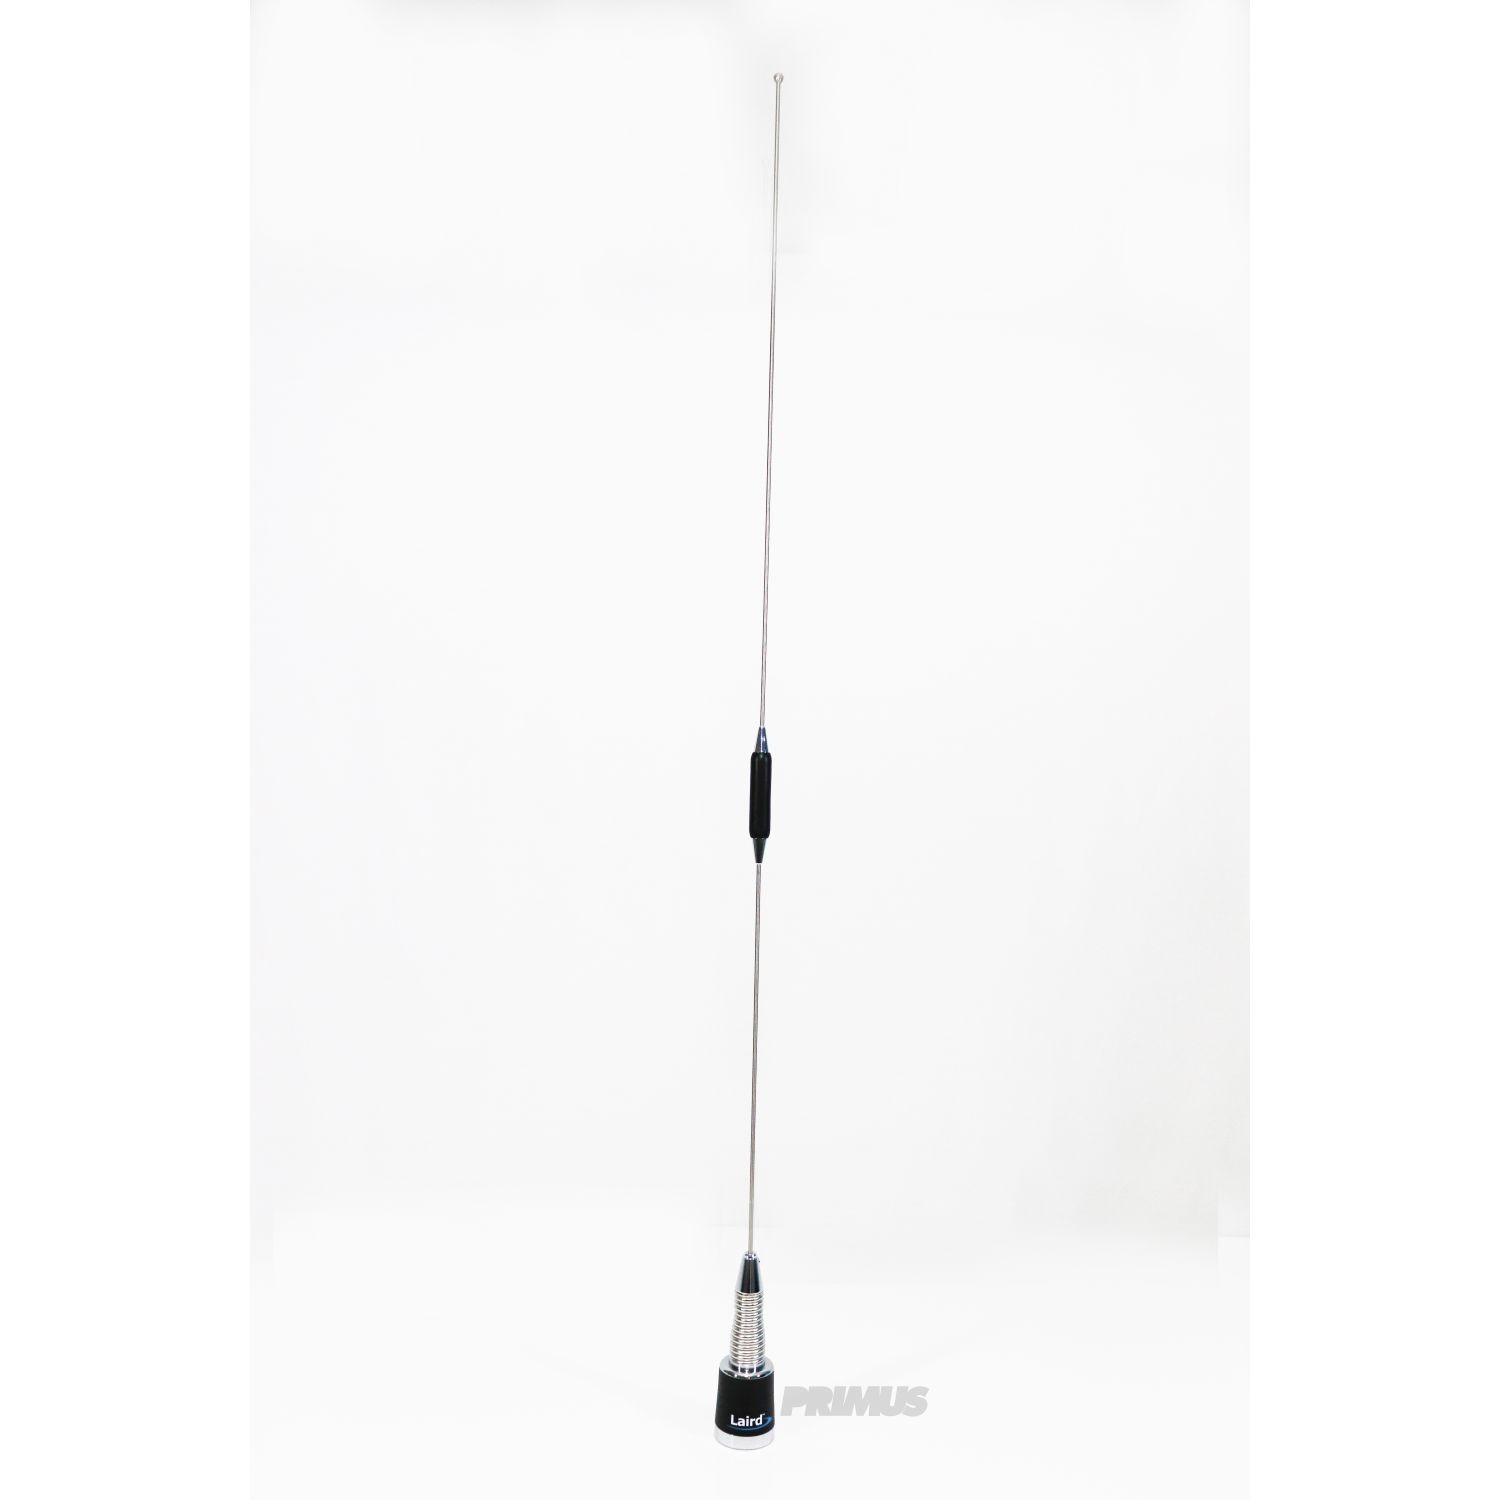 450-470 MHZ NGP CLOSED COIL COLLINEAR TUNABLE MOBILE ANTENNA WITH SPRING, 5 DBI, 32.5 IN. COLLINEAR WHIP